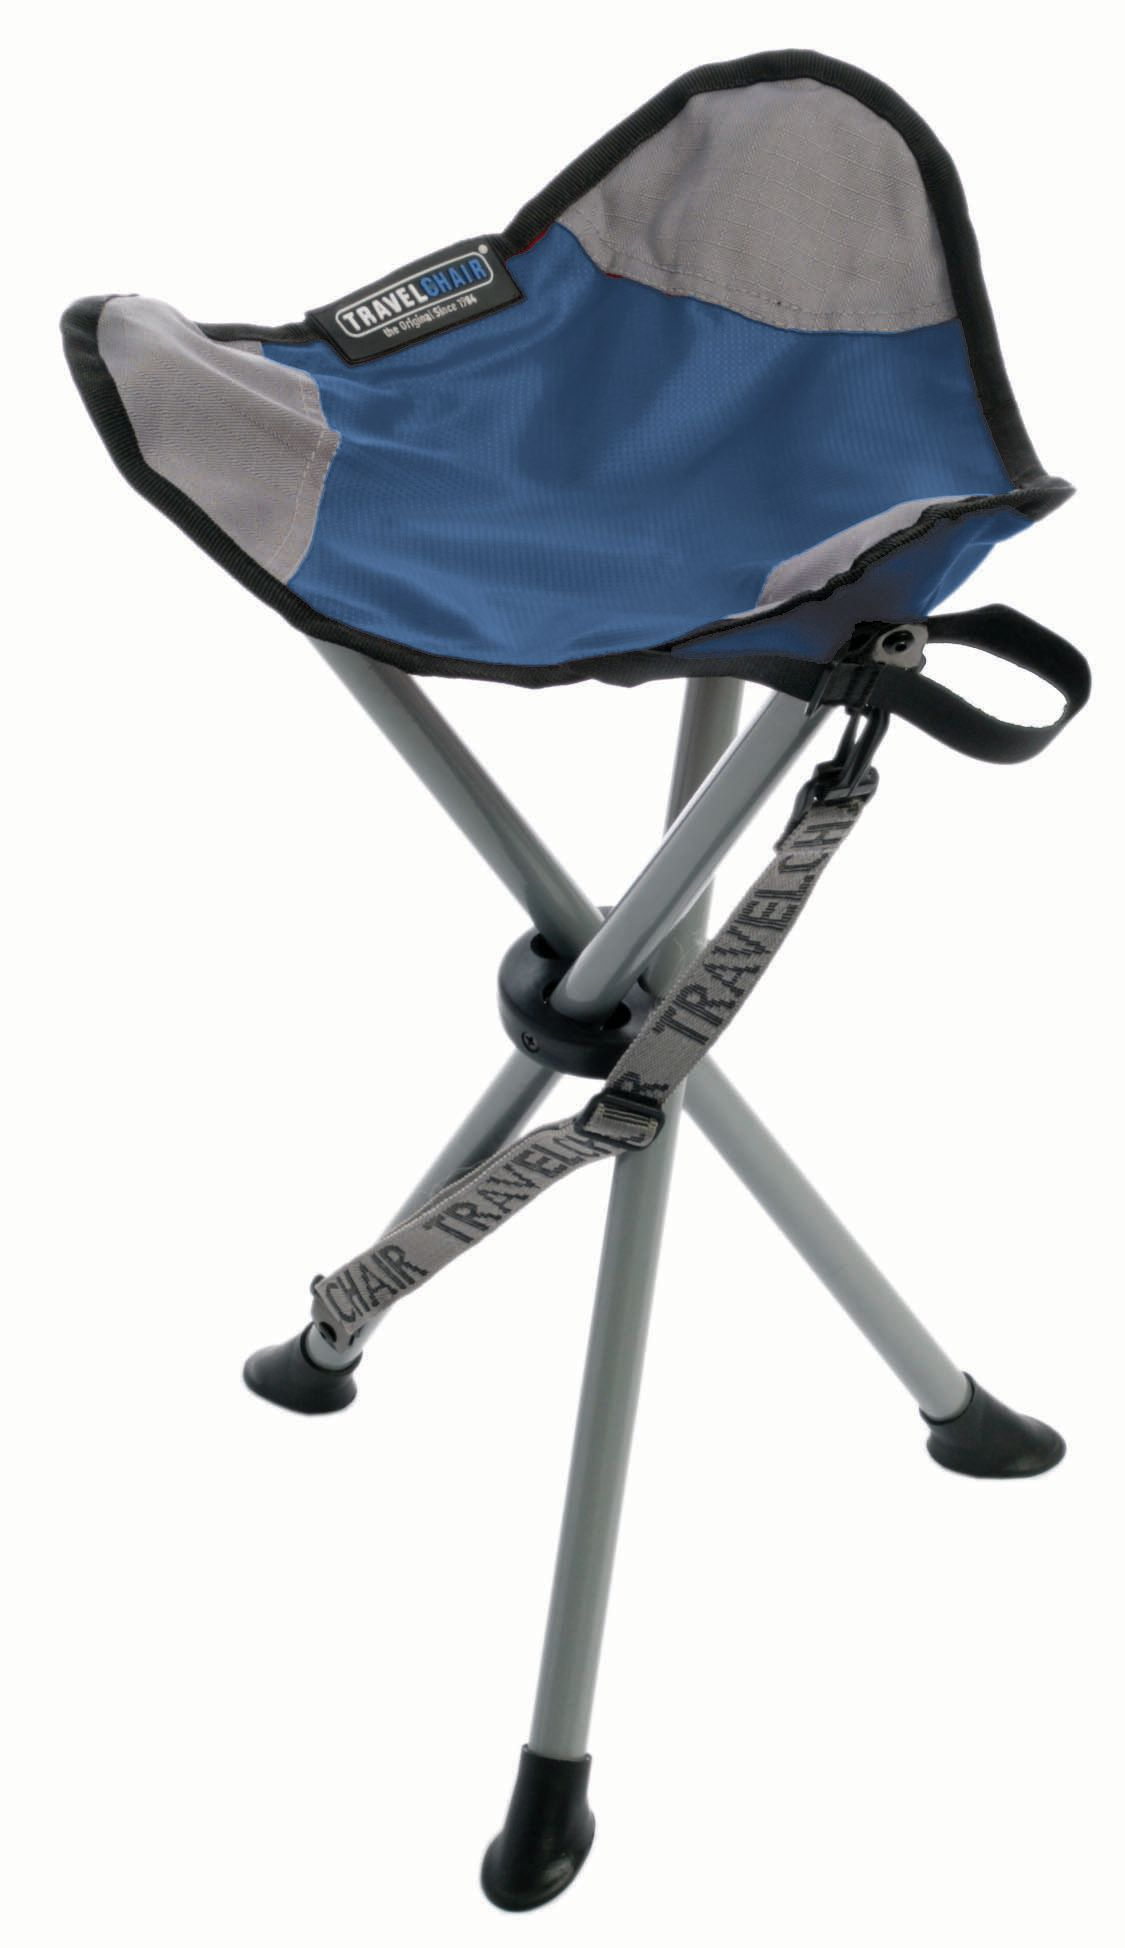 TravelChair Slacker Stool Camping stool, Camping chairs